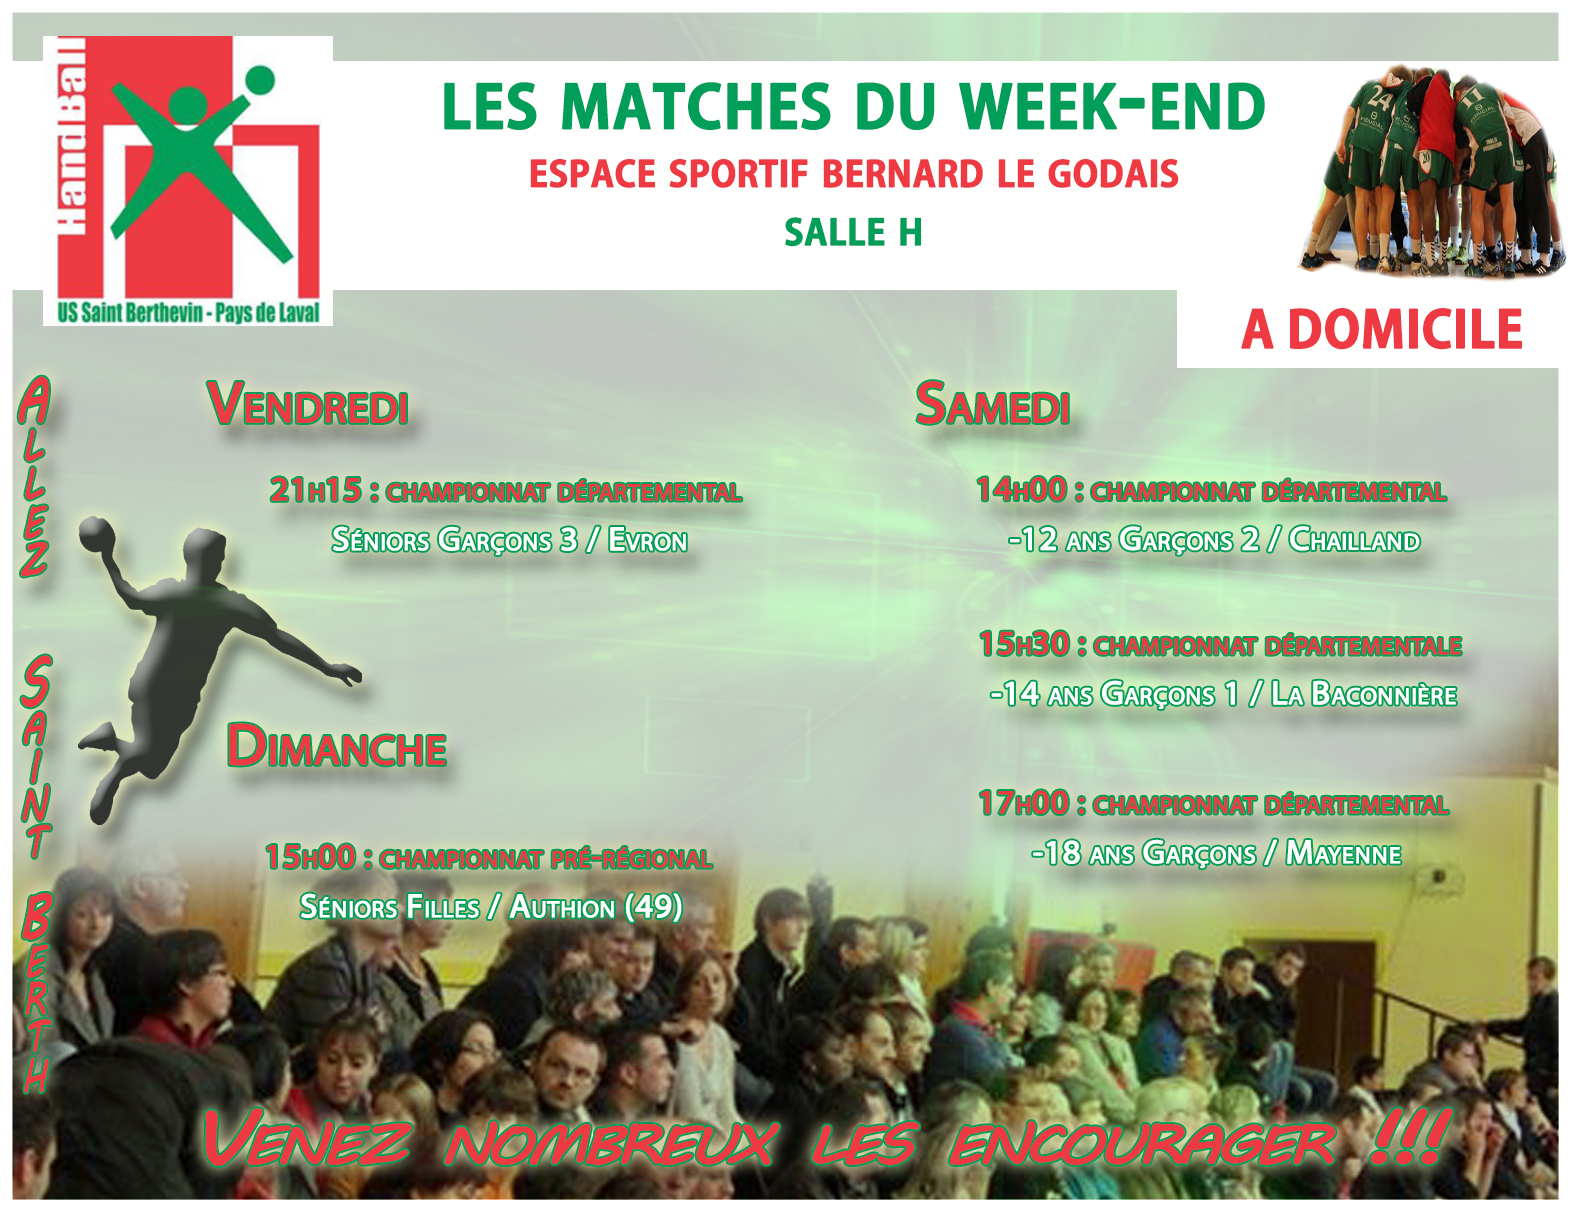 LE PROGRAMME DU WEEKEND DU 13/05/2017 A DOMICILE